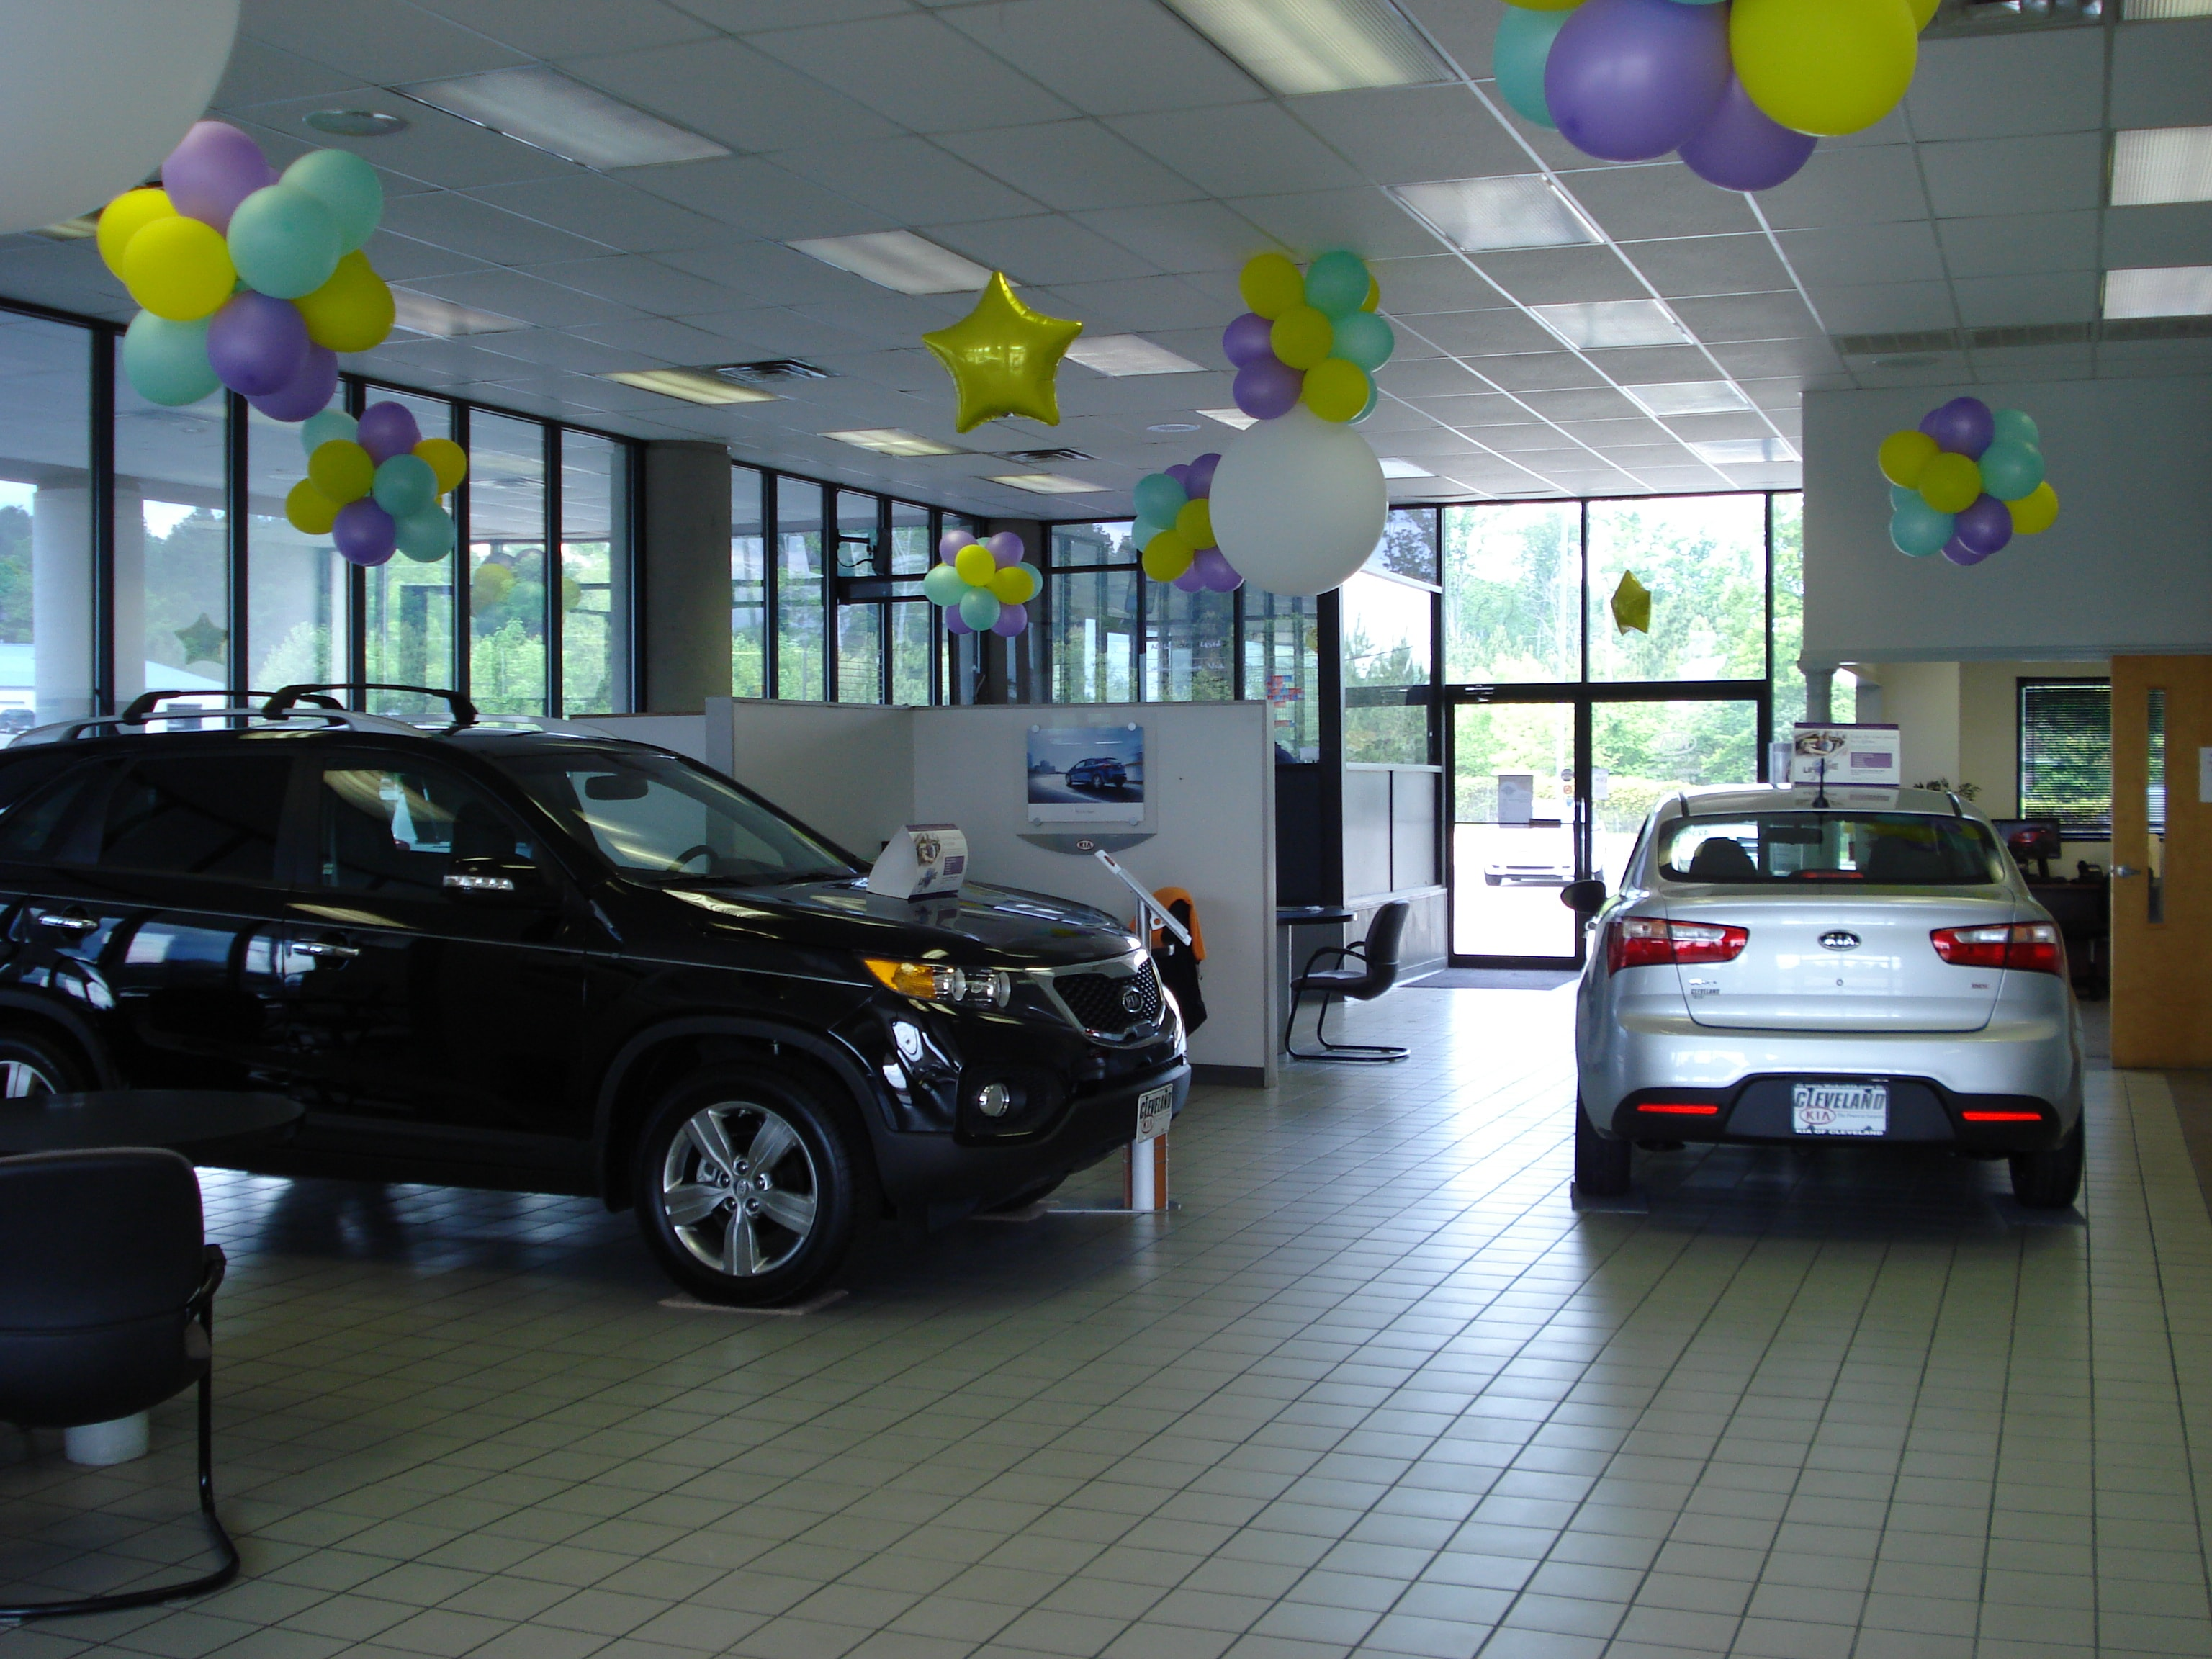 About Kia Of Cleveland   Your Cleveland TN New Kia And Used Car Dealership  Serving Dalton, Chatsworth, Chattanooga, East Ridge, Benton And Knoxville